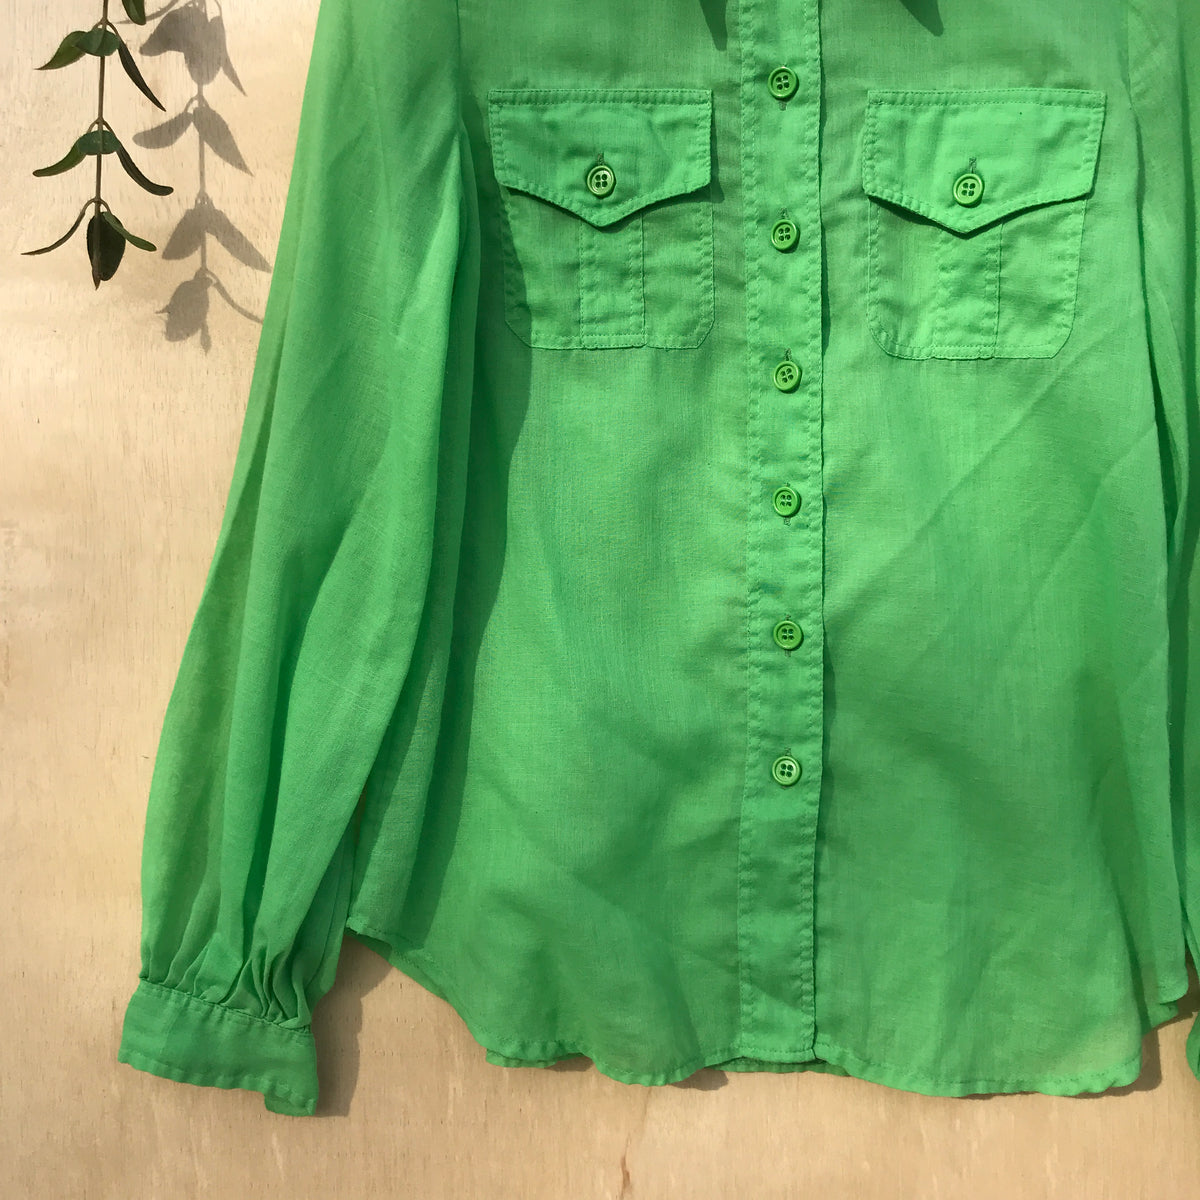 1970s Vintage Parrot Green Button Down Shirt